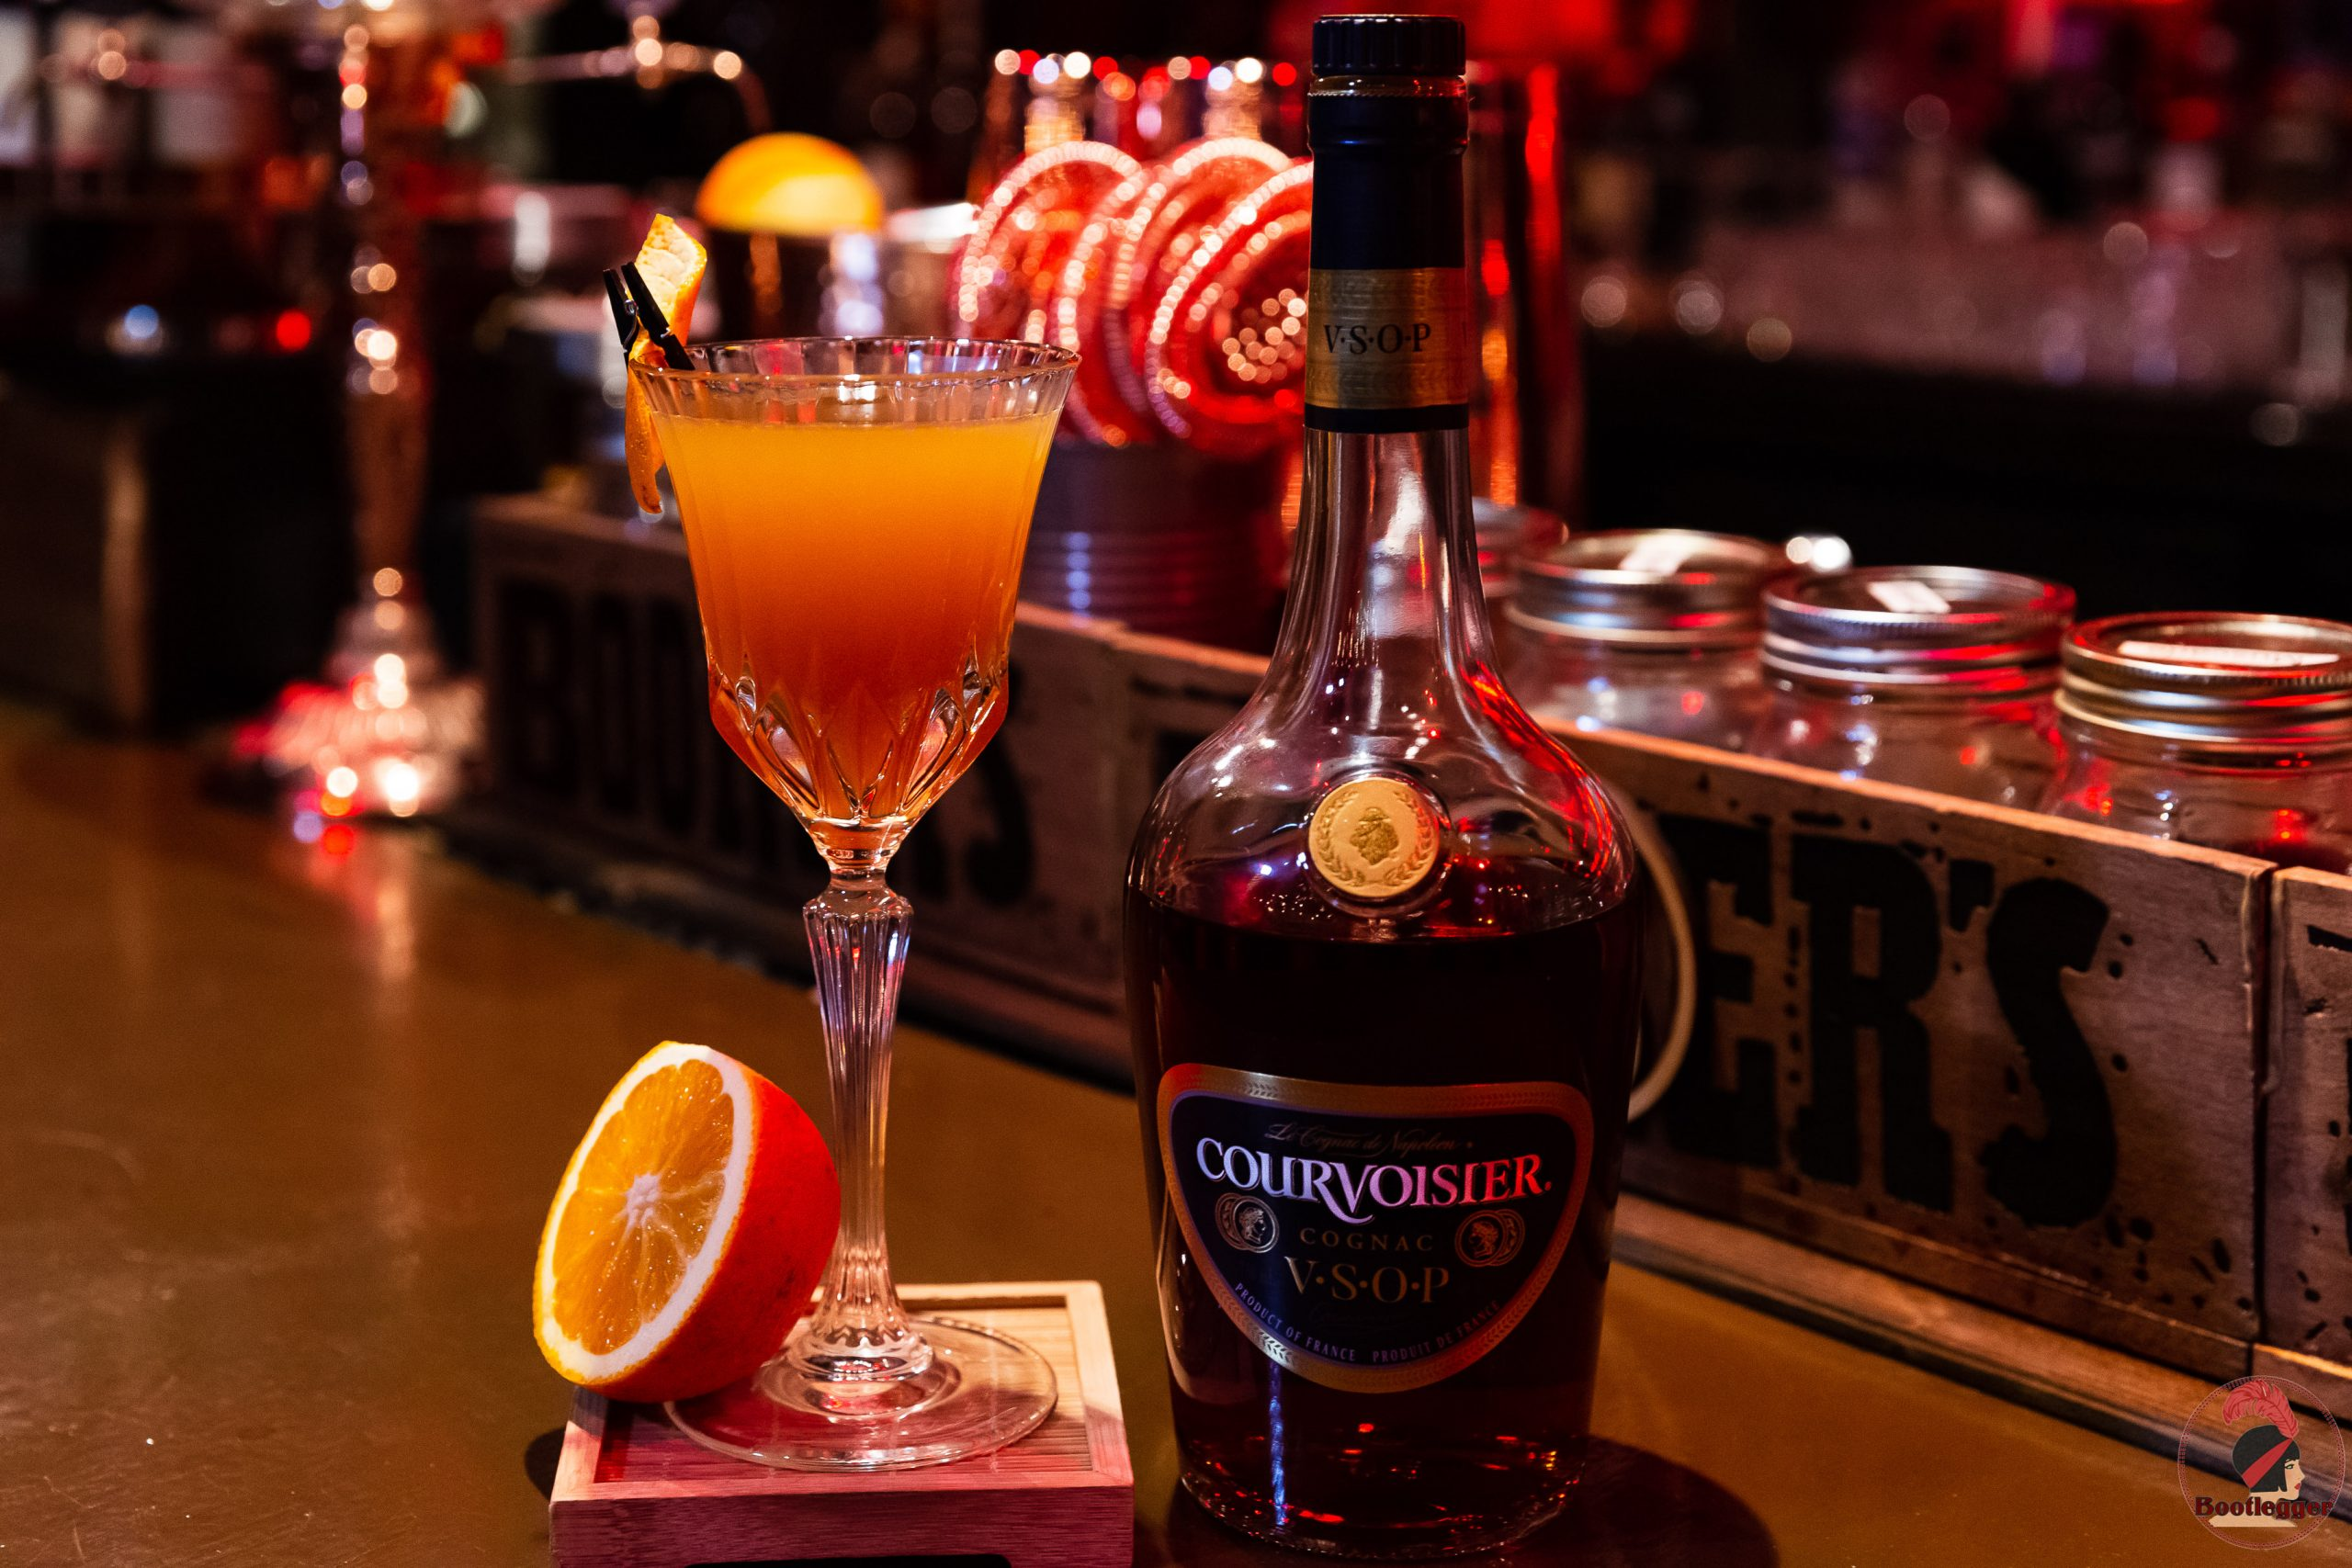 daisy cocktail courvoisier vsop montreal